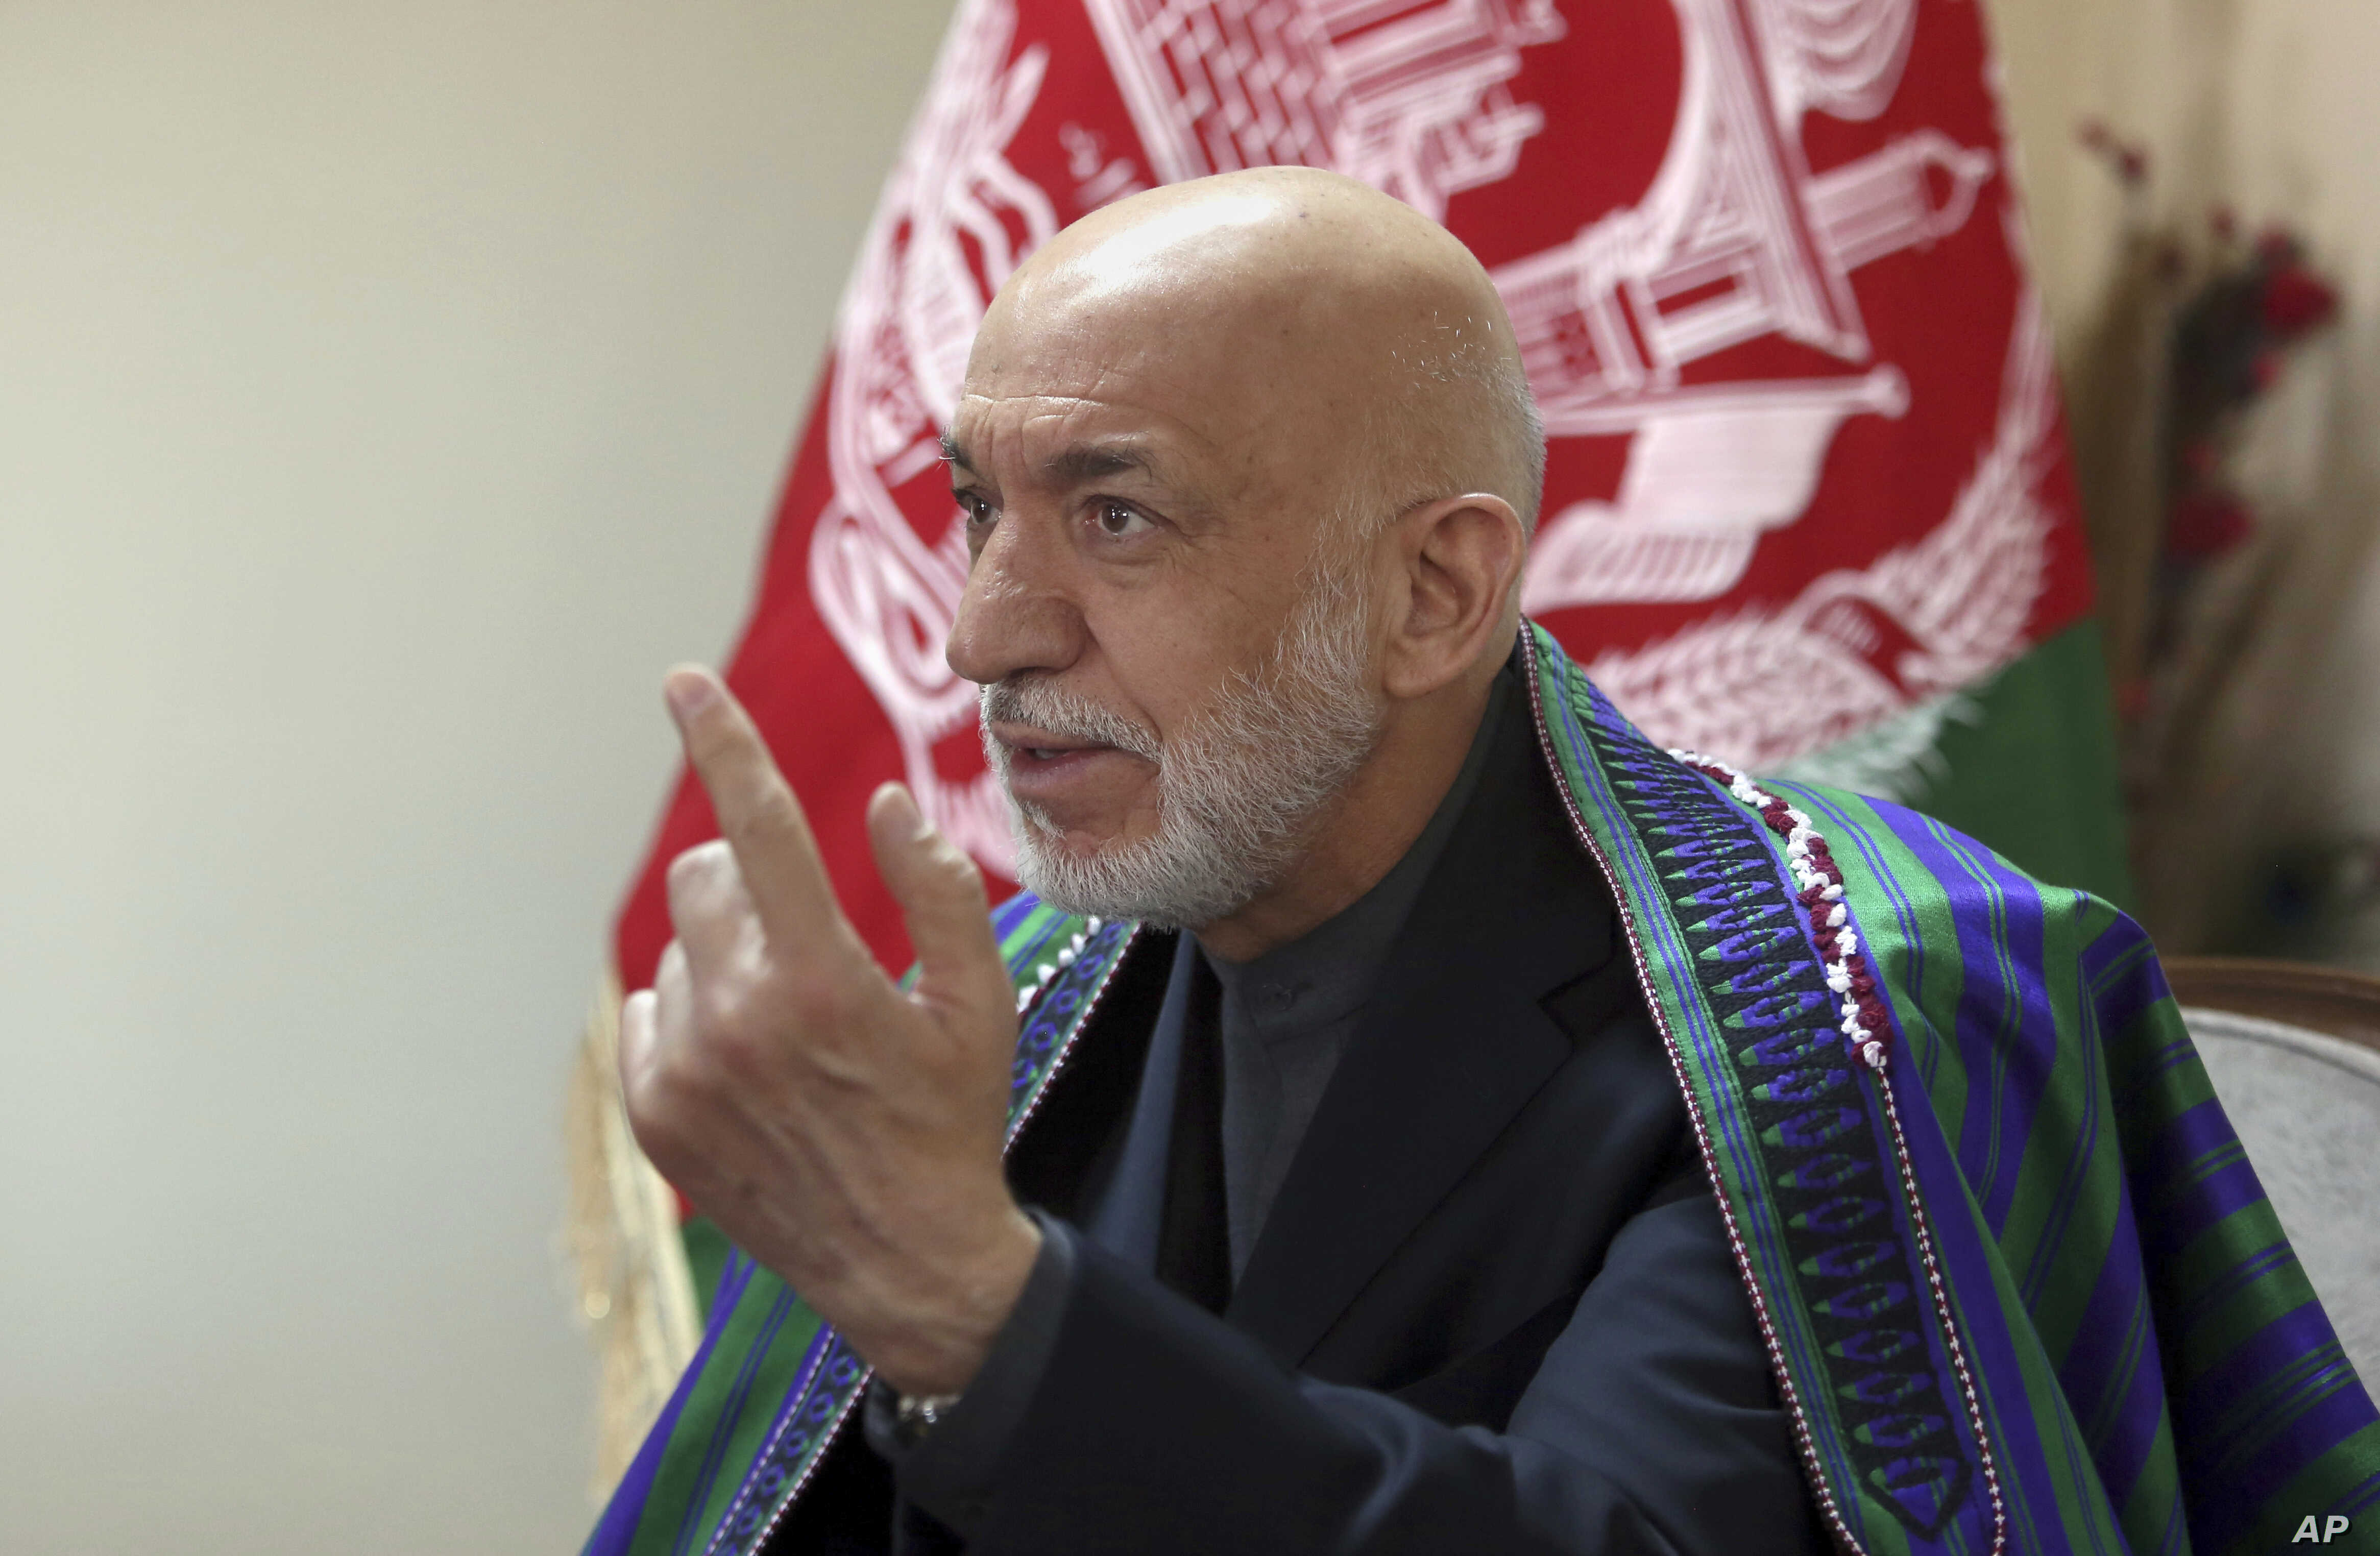 """Former Afghan President Hamid Karzai speaks during an interview with the Associated Press in Kabul, Afghanistan, Monday, April 17, 2017.  Karzai said that the U.S. is using Afghanistan as a weapons testing ground, calling the recent use of the largest-ever non-nuclear bomb """"an immense atrocity against the Afghan people."""" Last week, U.S. forces dropped the GBU-43 Massive Ordnance Air Blast (MOAB) bomb in Nangarhar province, reportedly killing 95 militants. (AP Photo/Rahmat Gul)"""